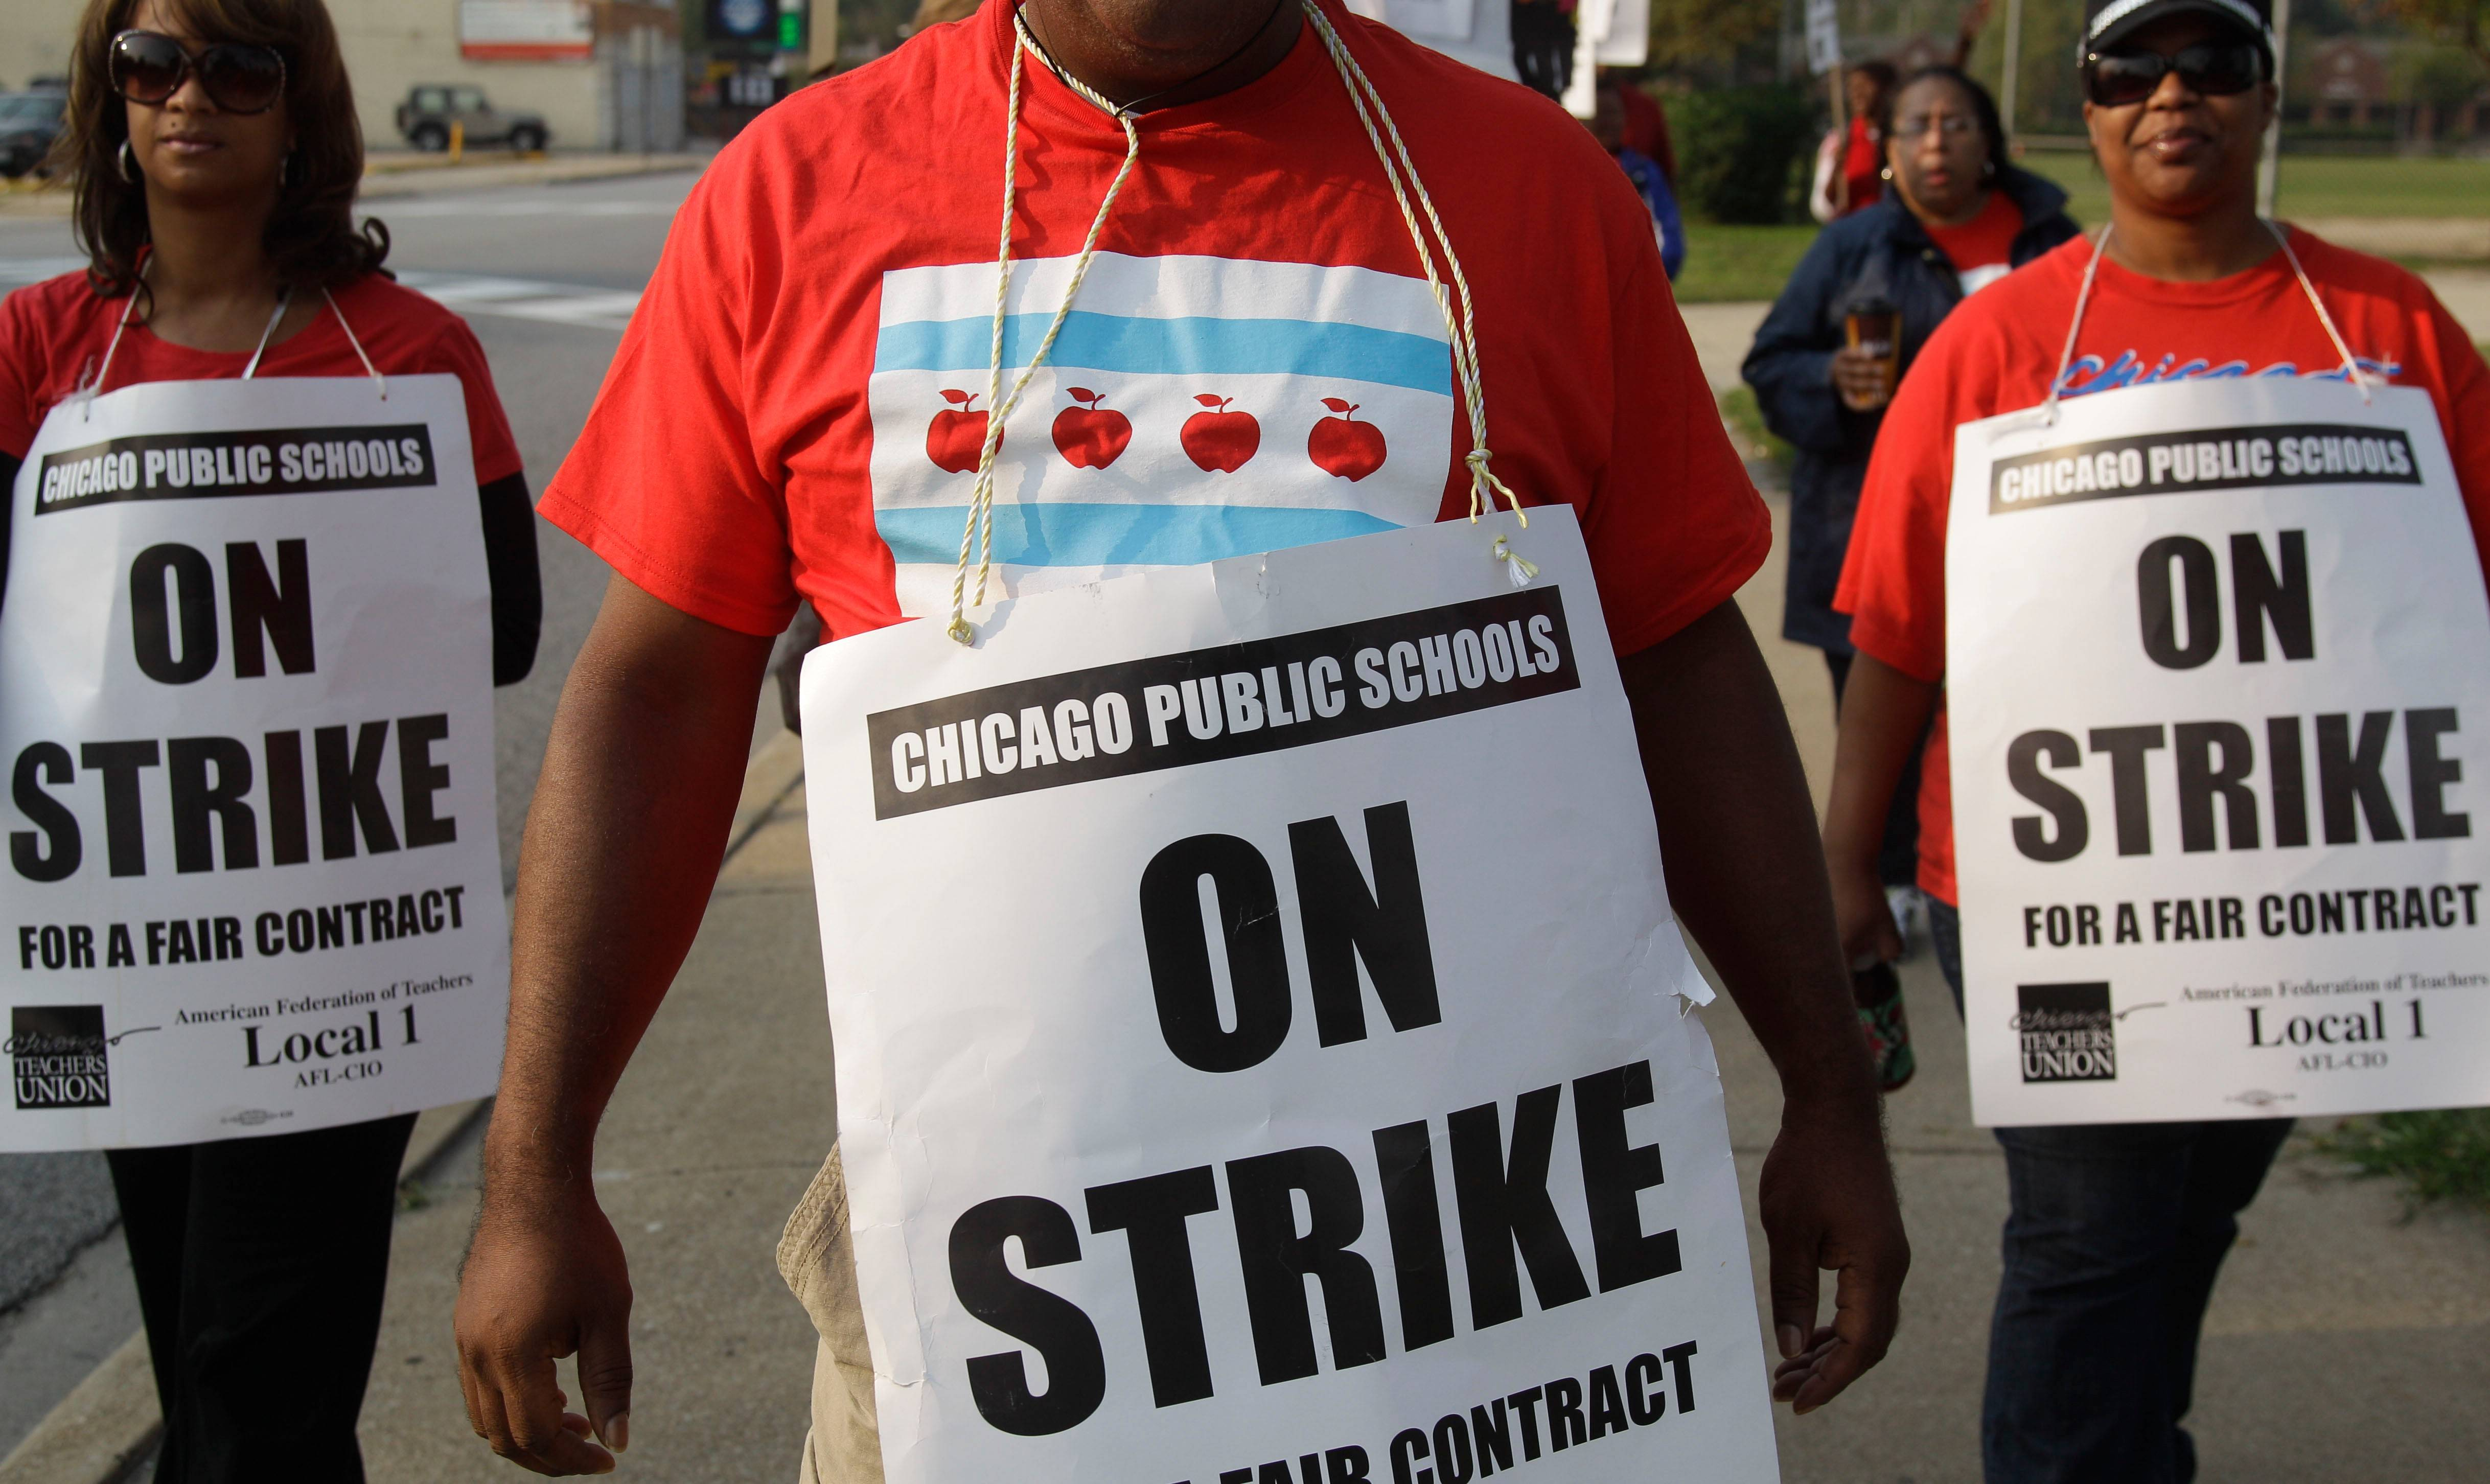 Smaller, more subdued groups of teachers picket outside Morgan Park High School in Chicago, Monday,as a strike by Chicago Teachers Union members heads into its second week. Mayor Rahm Emanuel said he will seek a court order to force the city's teachers back into the classroom.